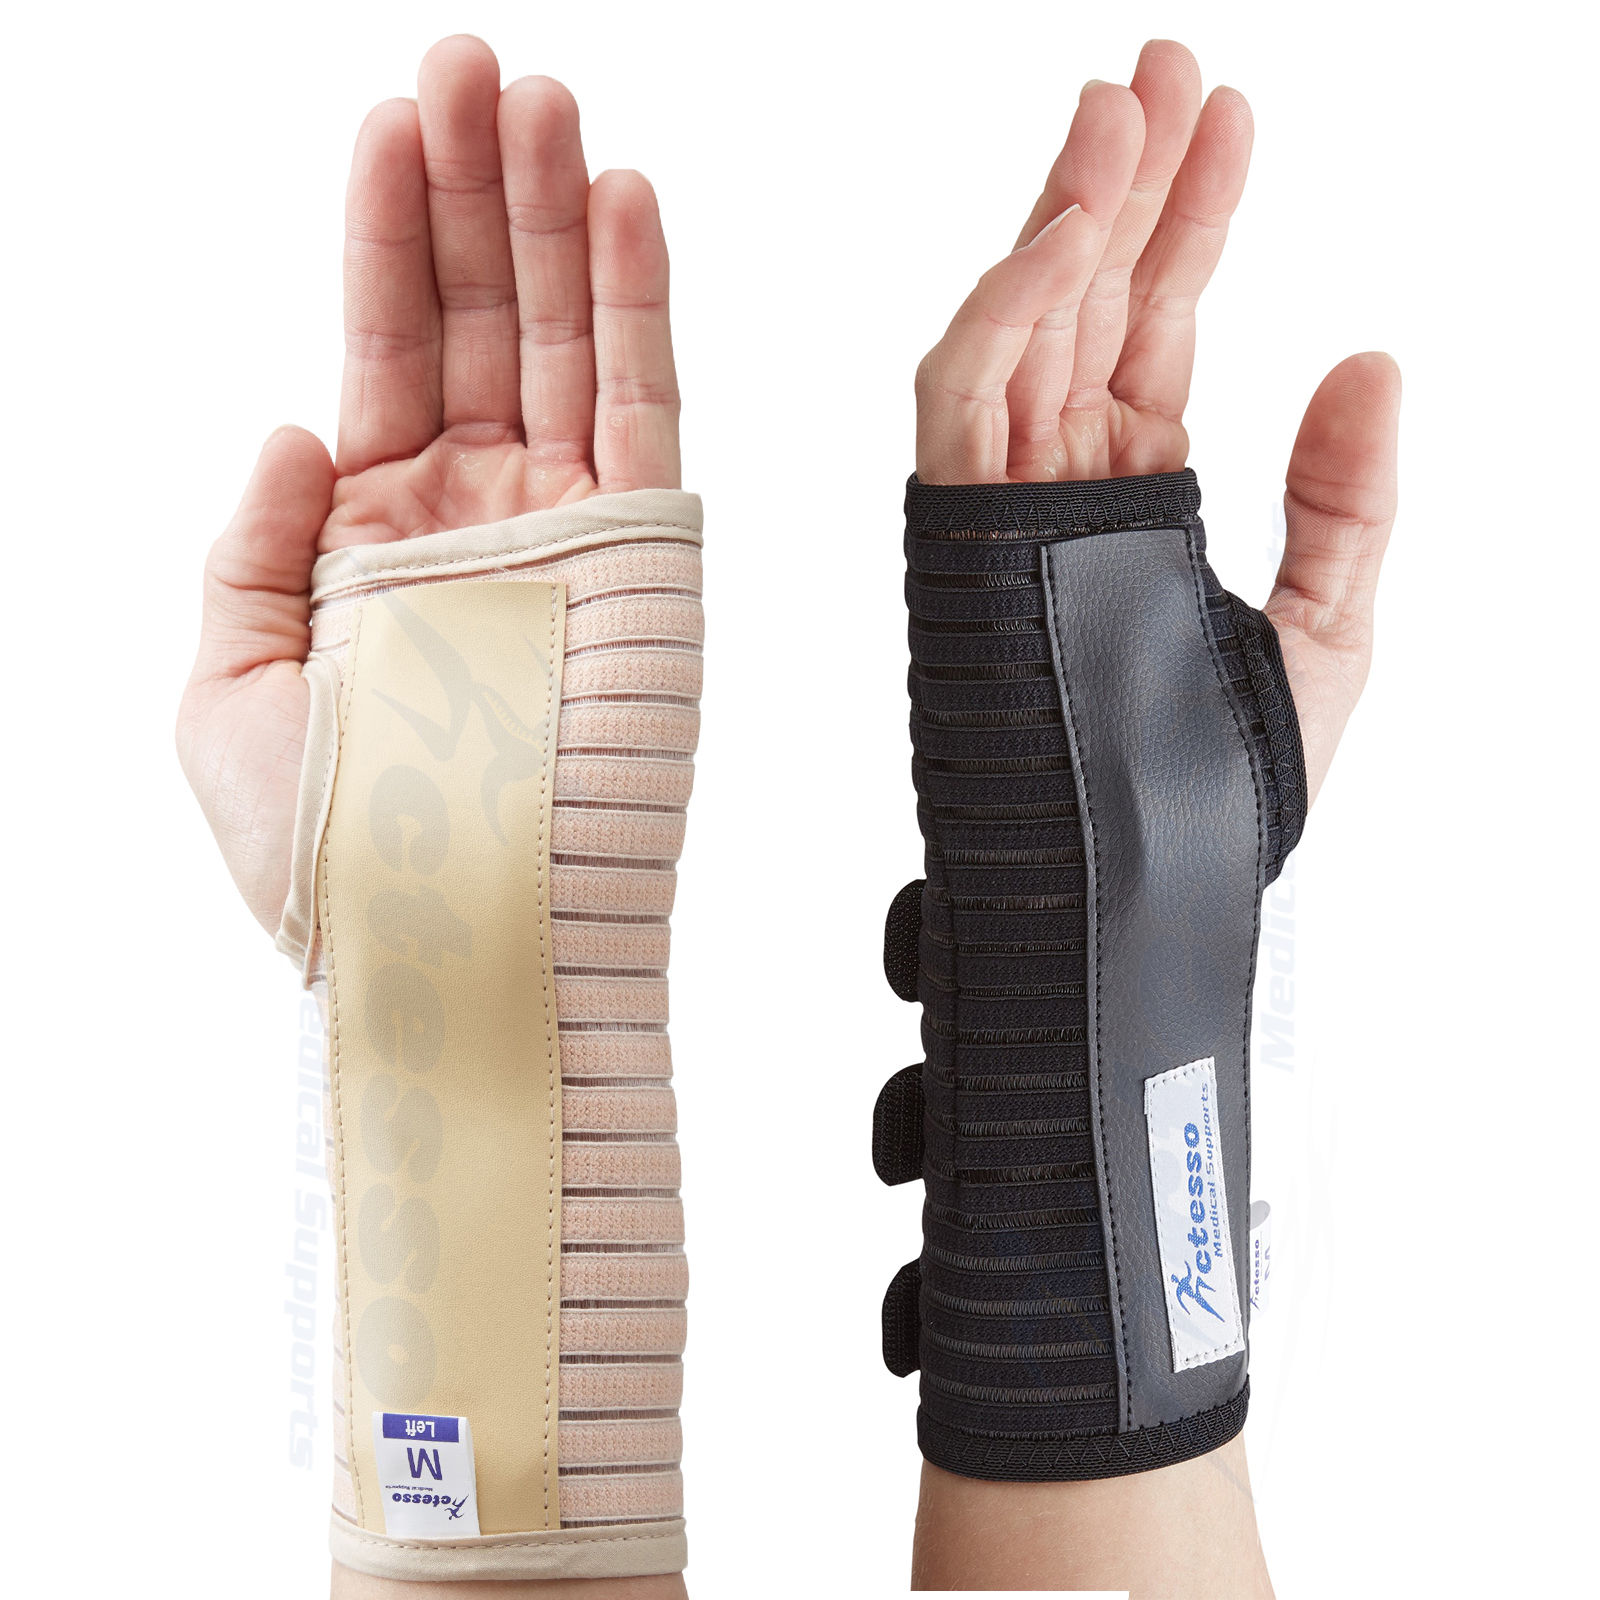 Motorcycle gloves carpal tunnel syndrome -